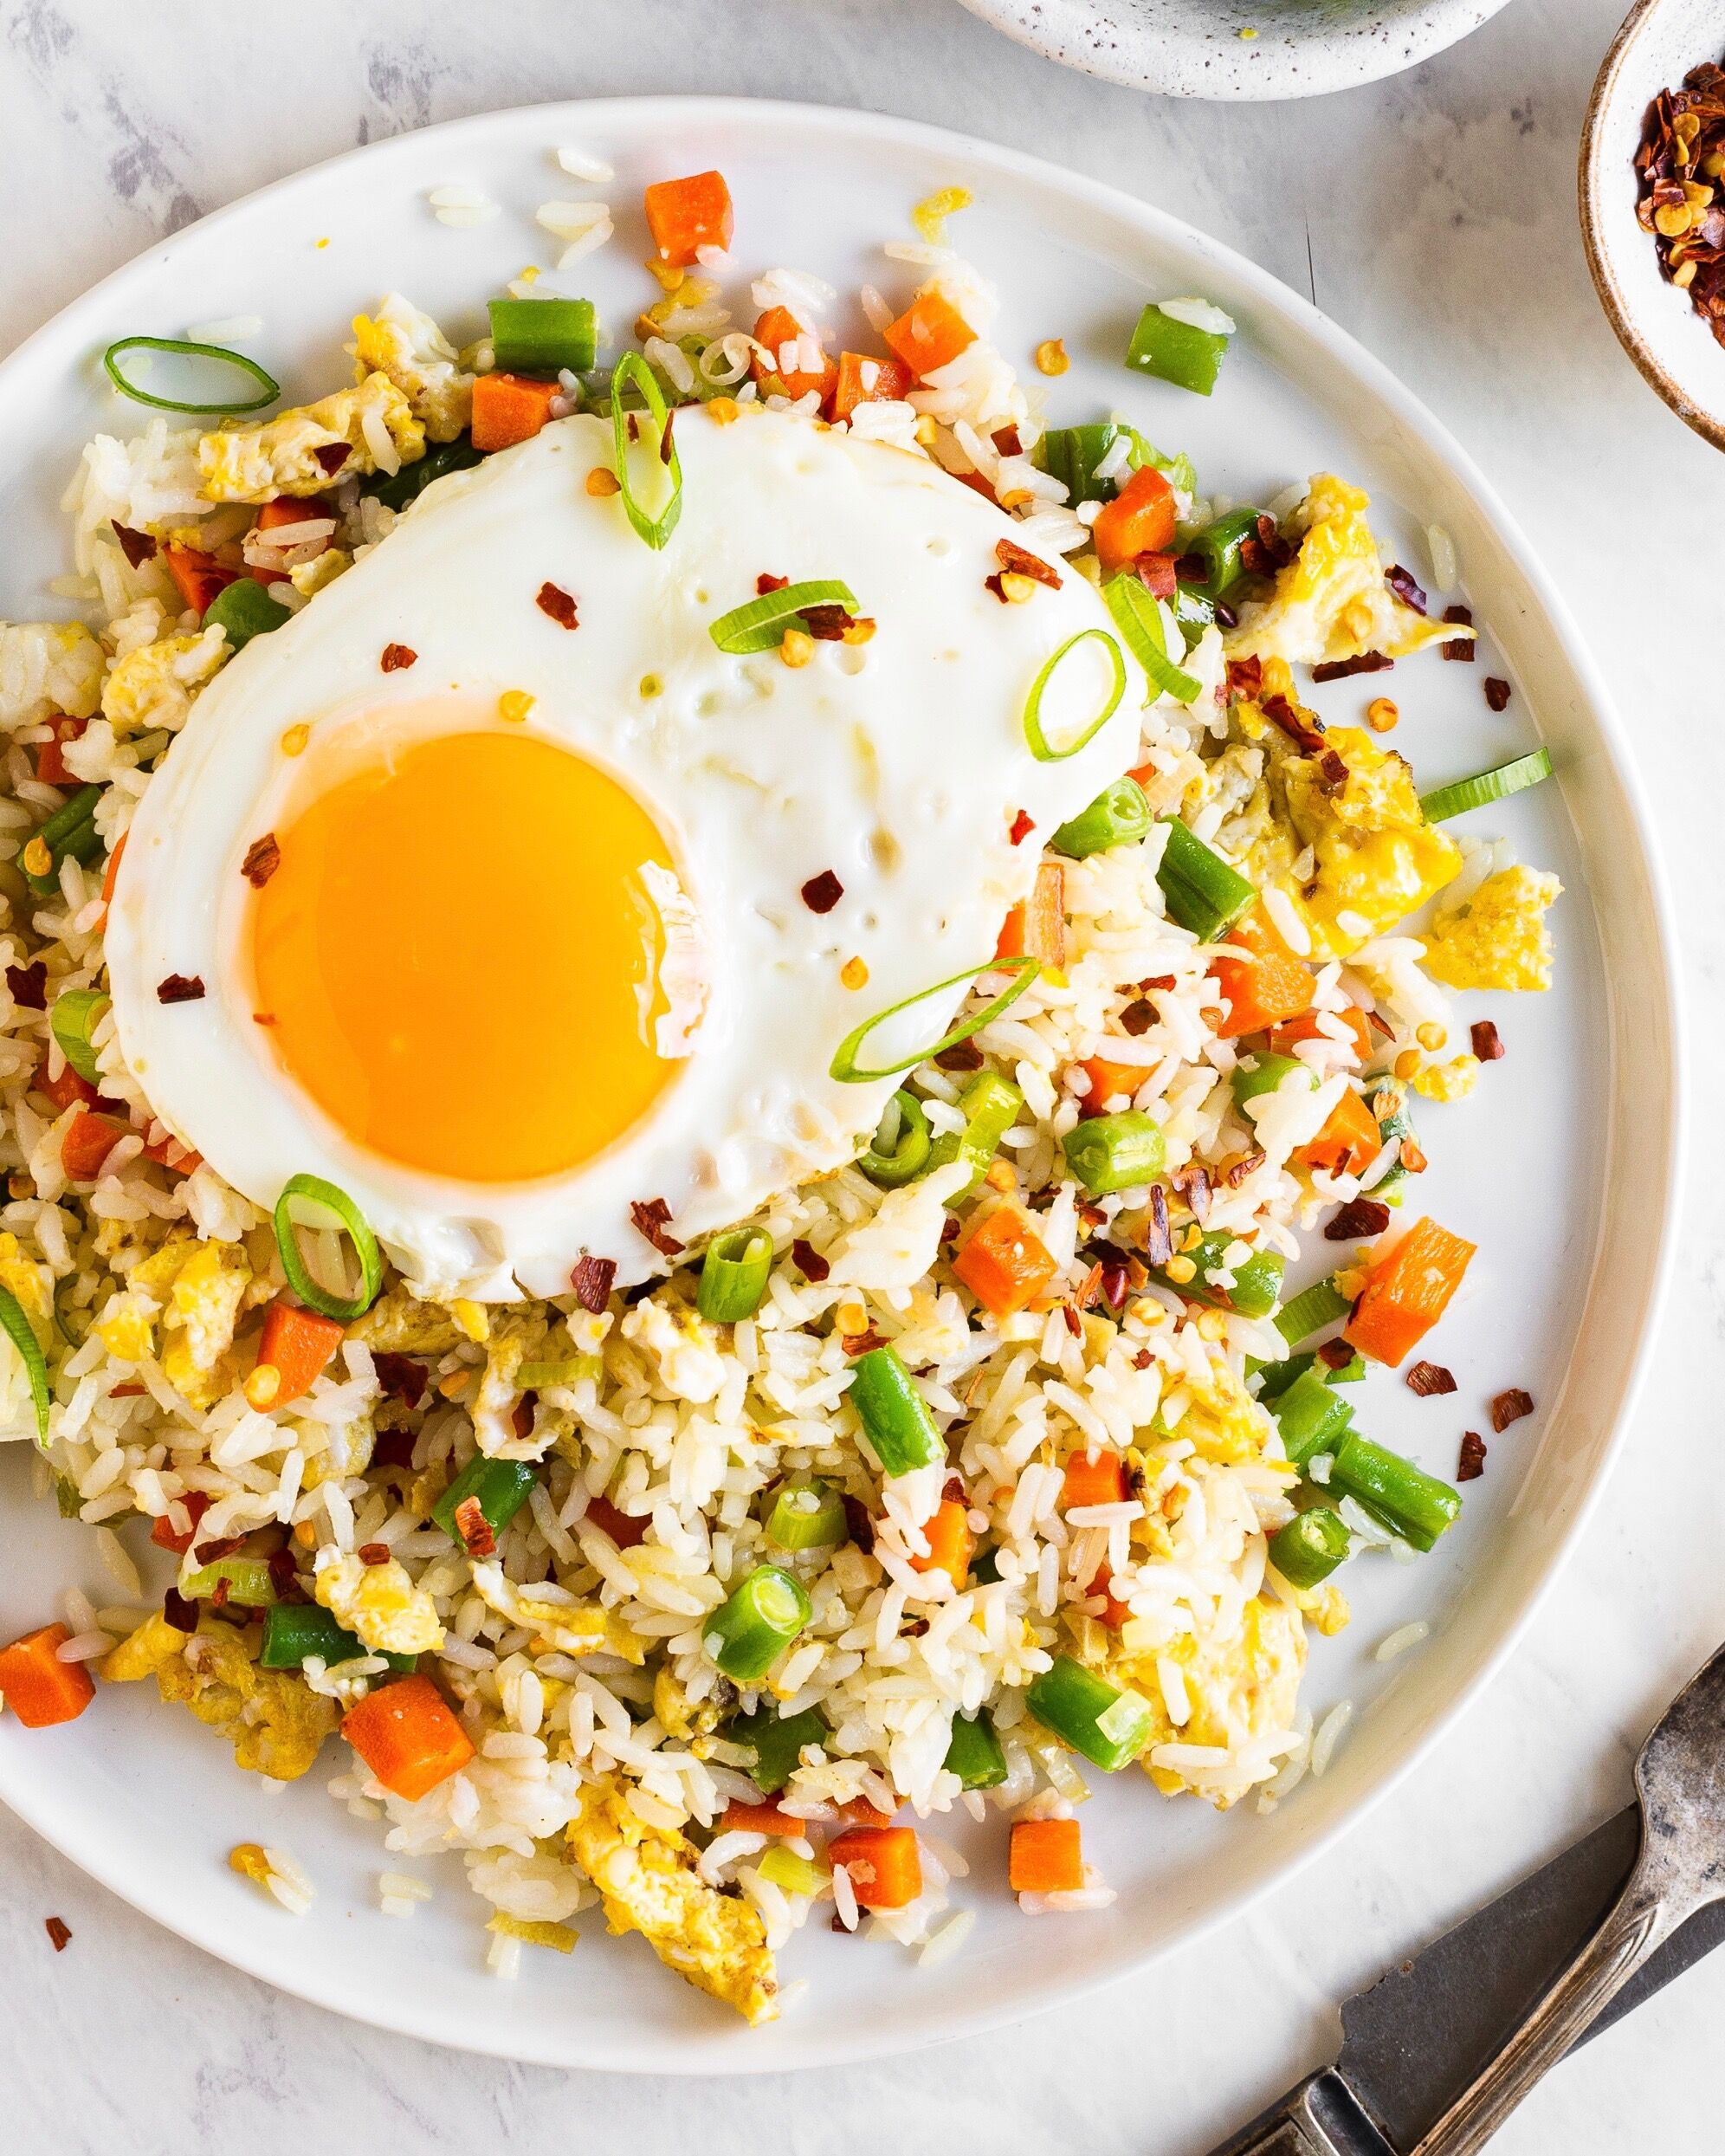 Vegetable Fried Rice With Egg By Bravotopchef Quick Easy Recipe The Feedfeed